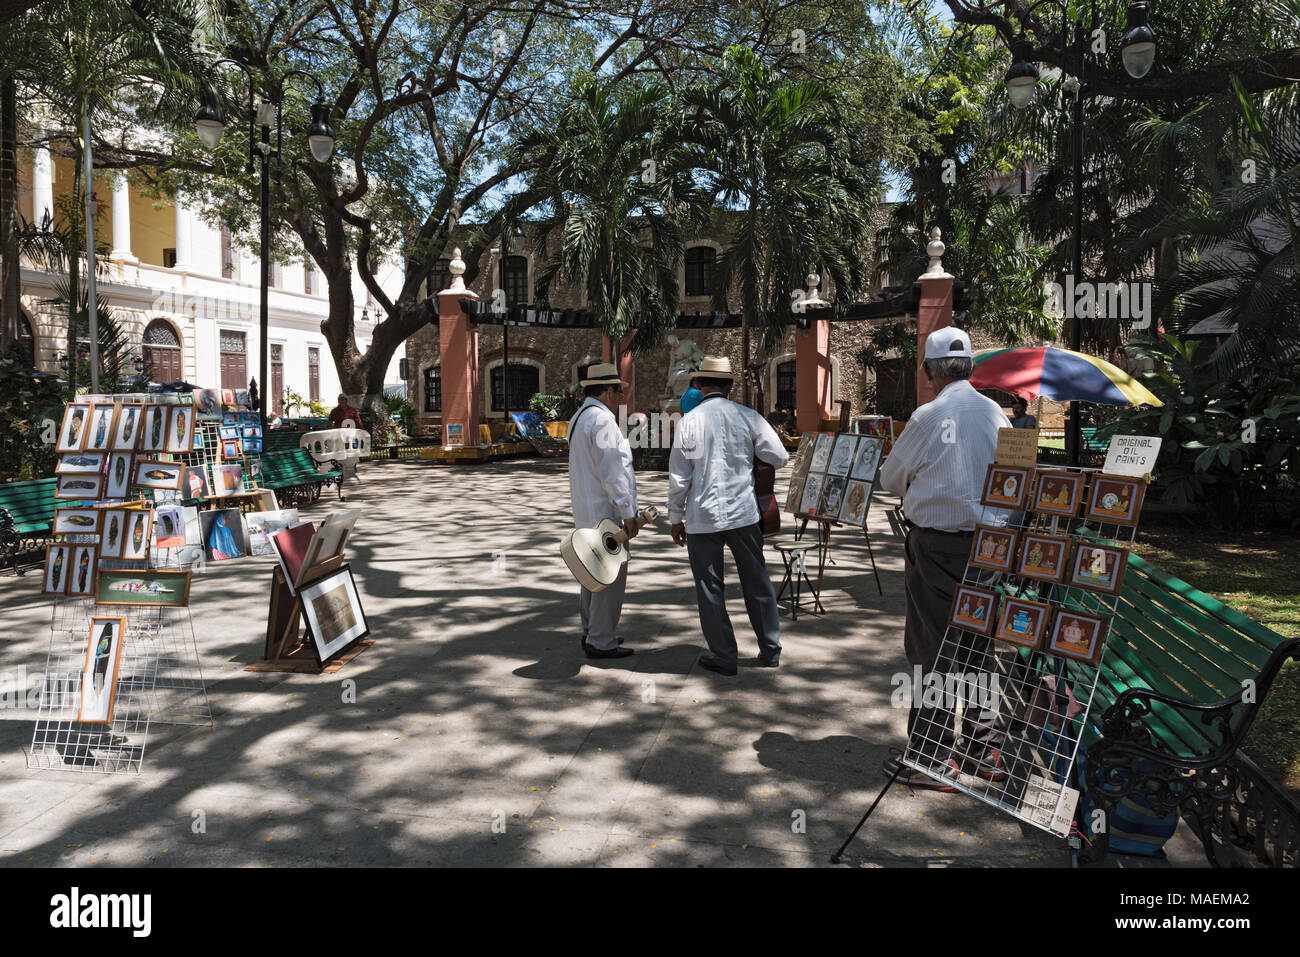 Street vendors and musicians in the Madre Park in the historic center of Merida, Yucatan, Mexico - Stock Image